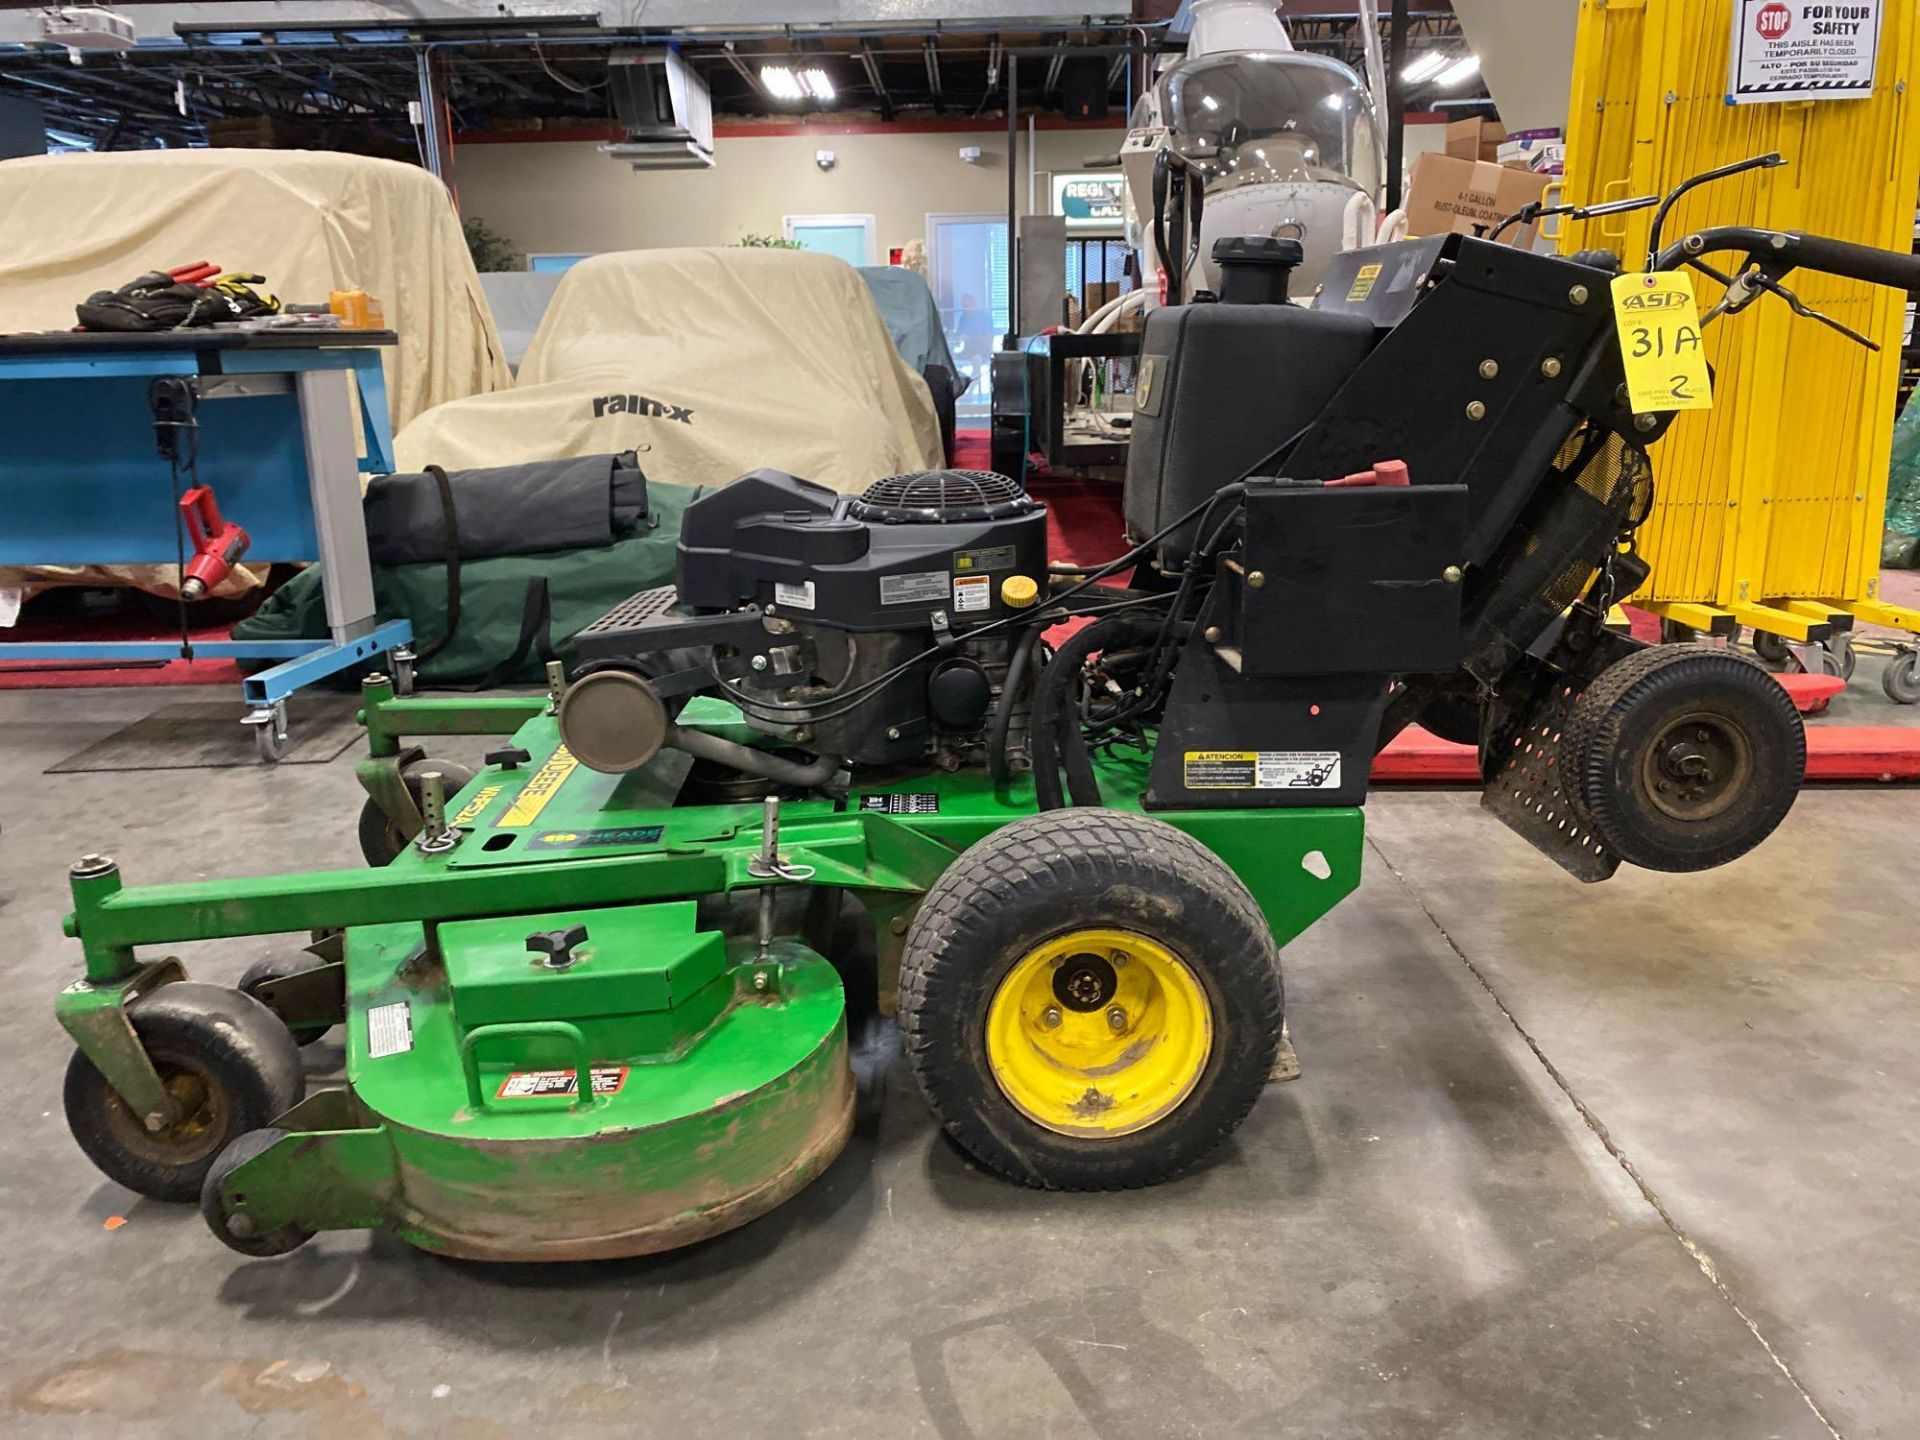 """Lot 31A - 2016 JOHN DEERE WHP52A STAND ON MOWER, 1,028 HOURS SHOWING, 52"""" DECK, GAS POWERED, RUNS AND OPERATES"""